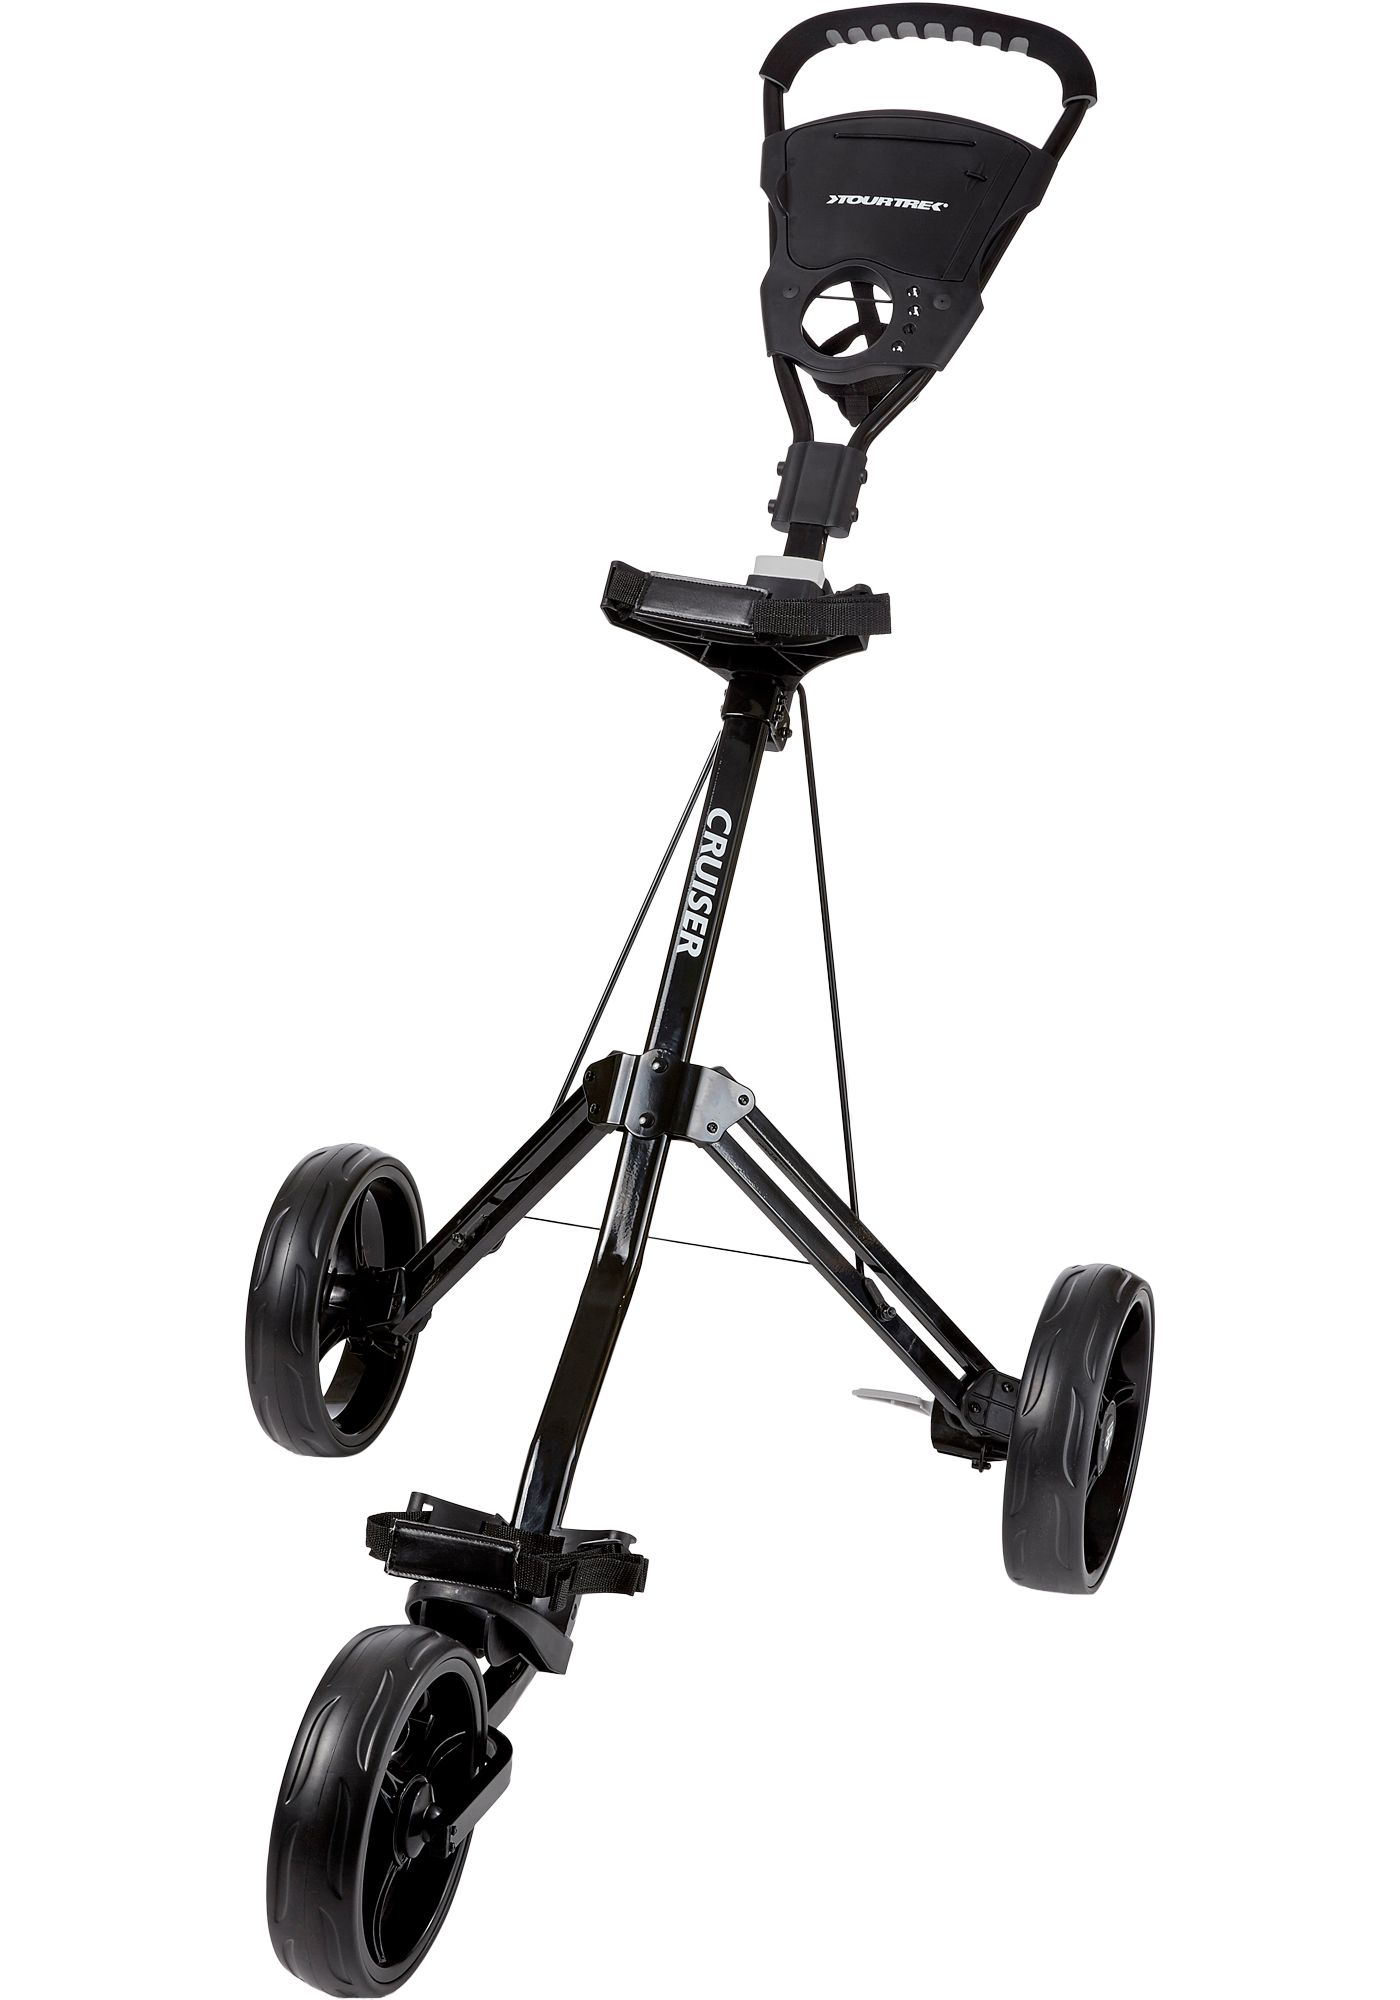 TourTrek 2018 Cruiser 3-Wheel Push Cart